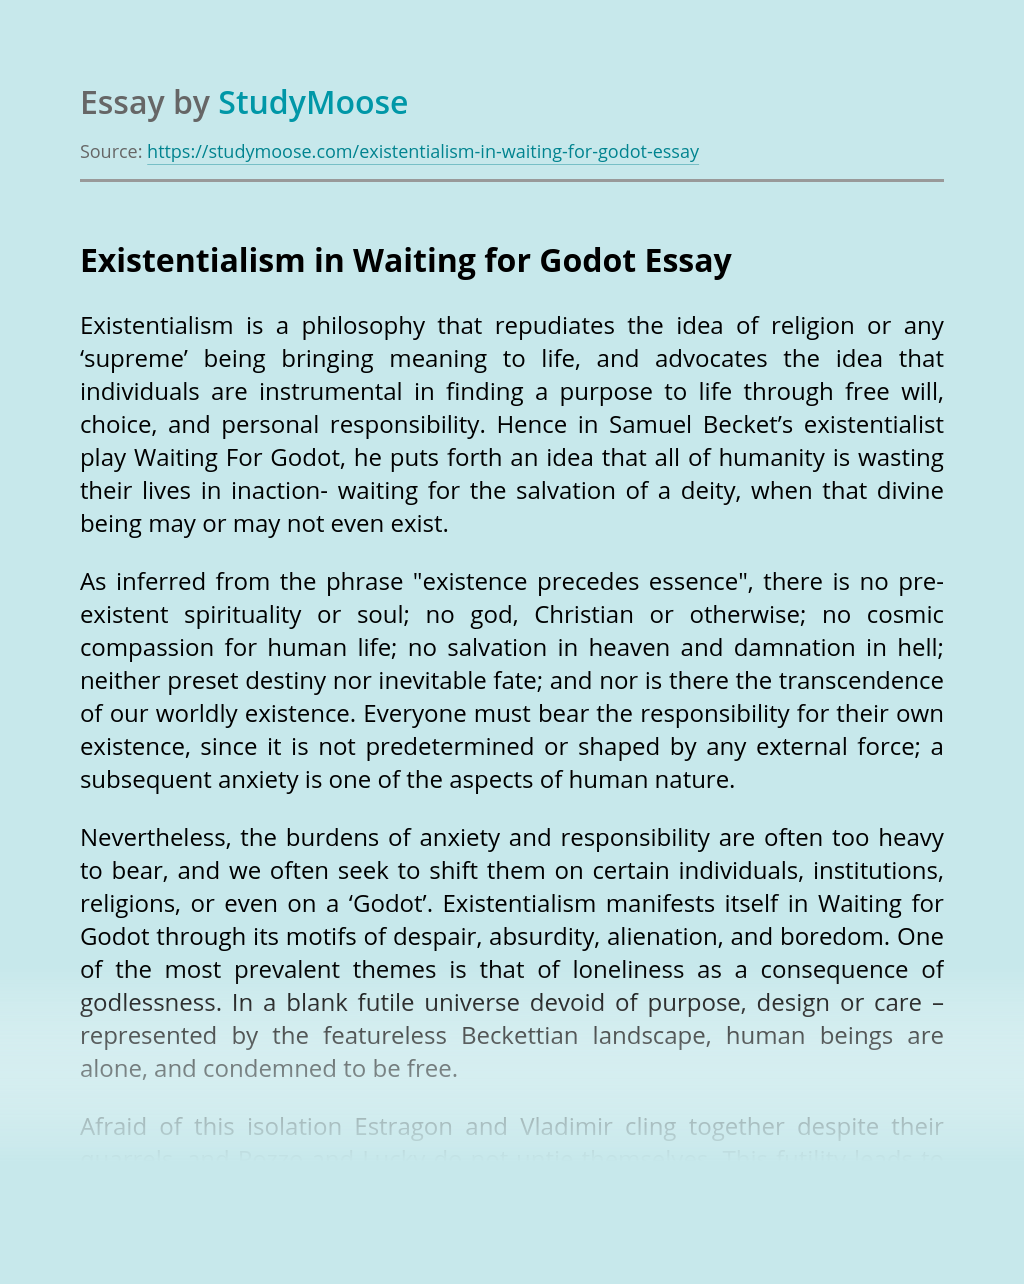 Existentialism in Waiting for Godot